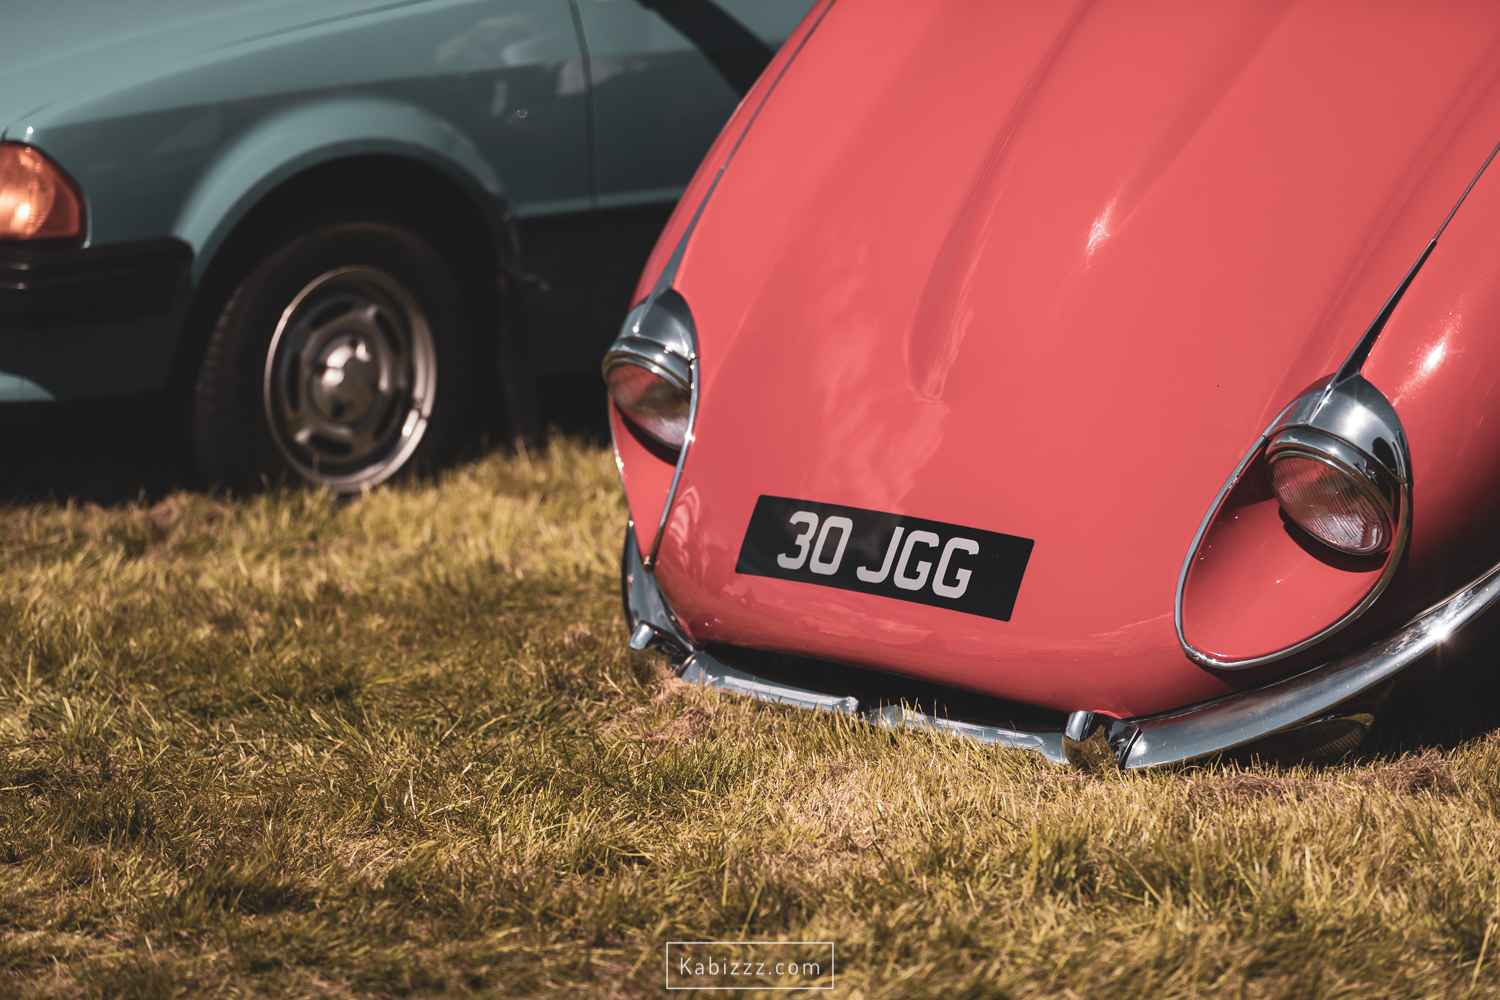 Kabizzz_Photography_Stirling_District_Classic _cars-94.jpg